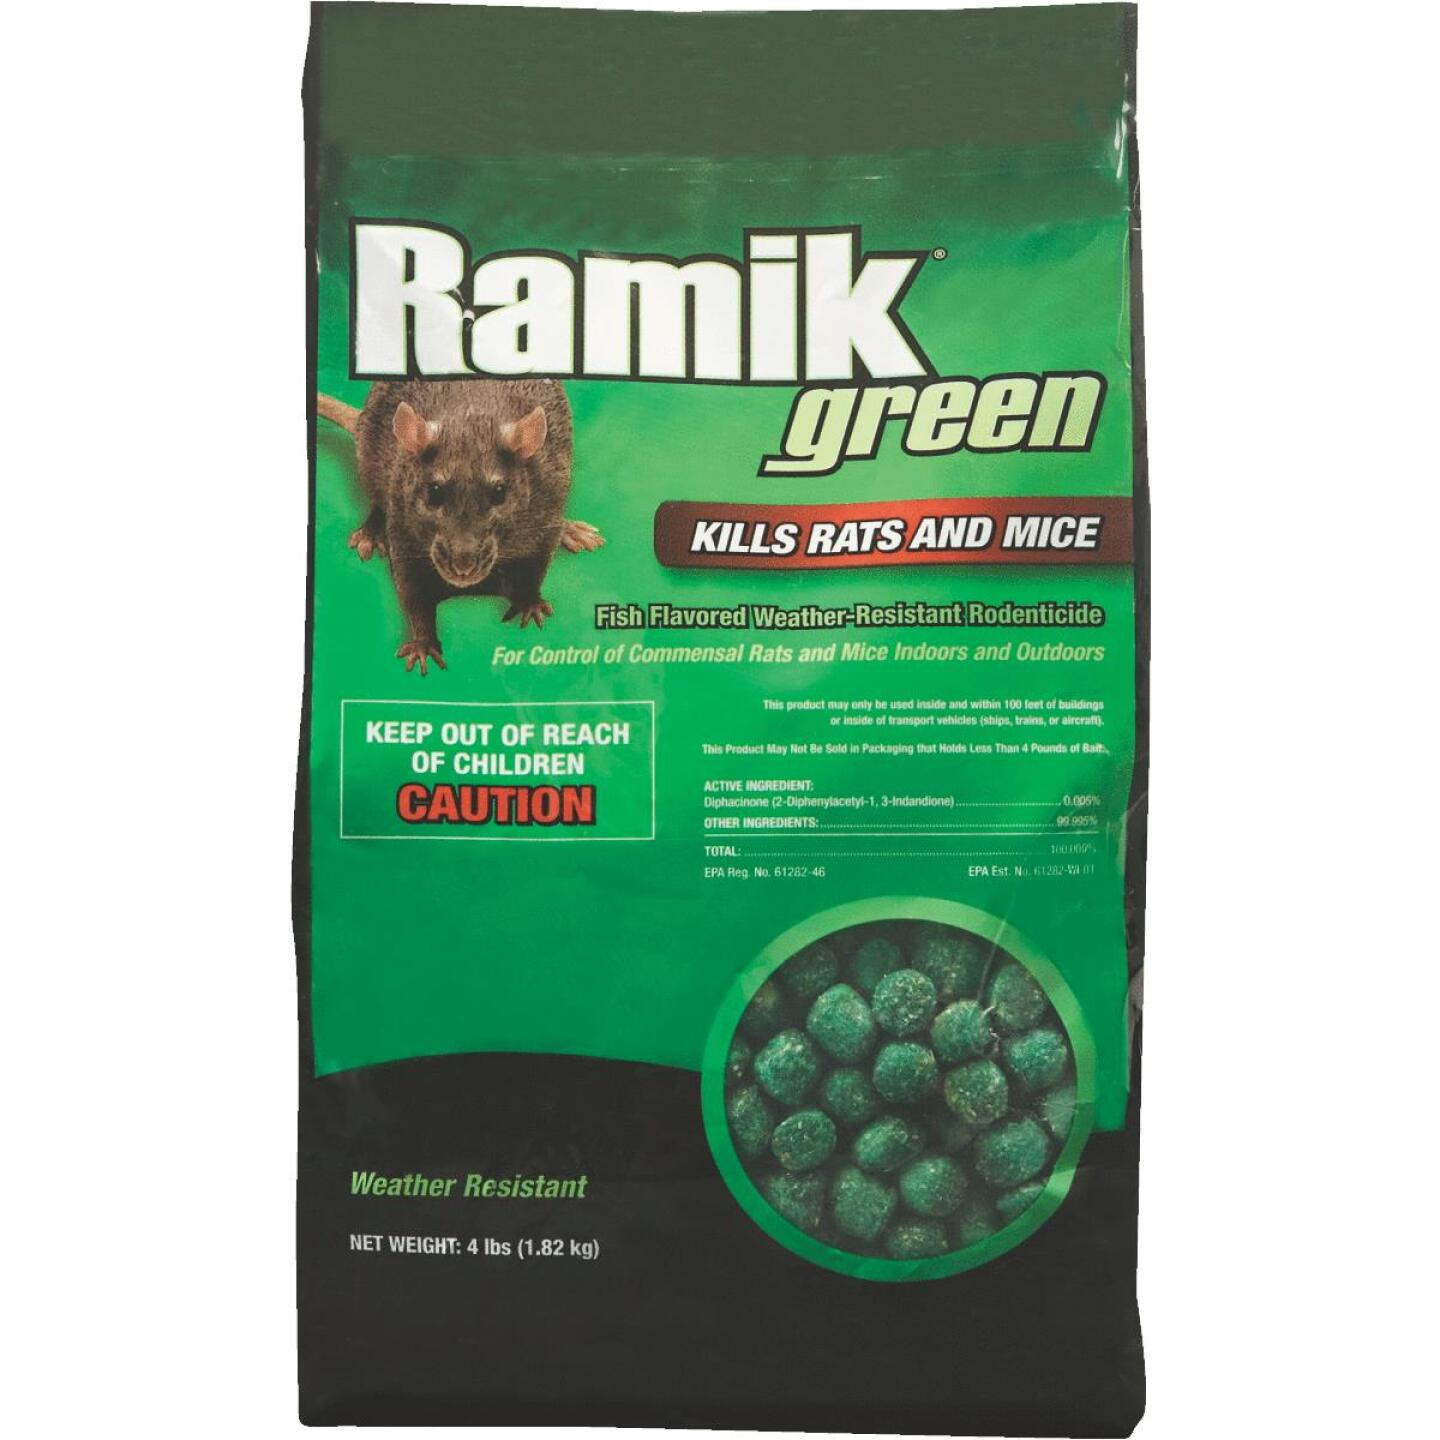 Ramik Green Nugget Rat And Mouse Poison, 4 Lb. Image 1